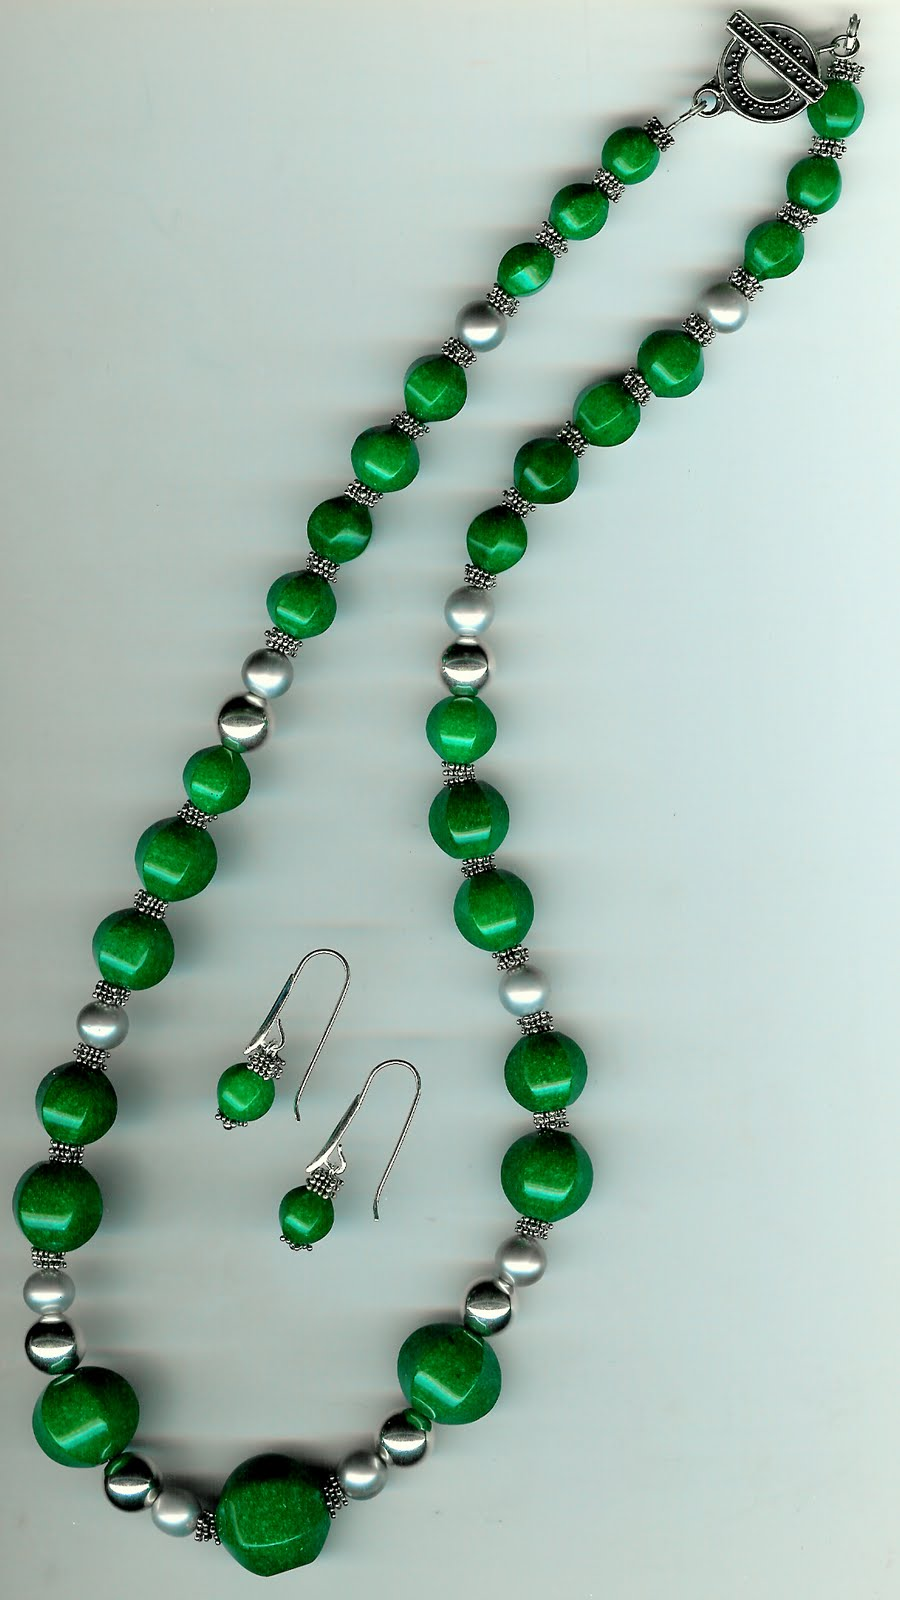 178. Faceted, graduated green jade with Akoya Pearls and Bali Sterling Silver + Earrings